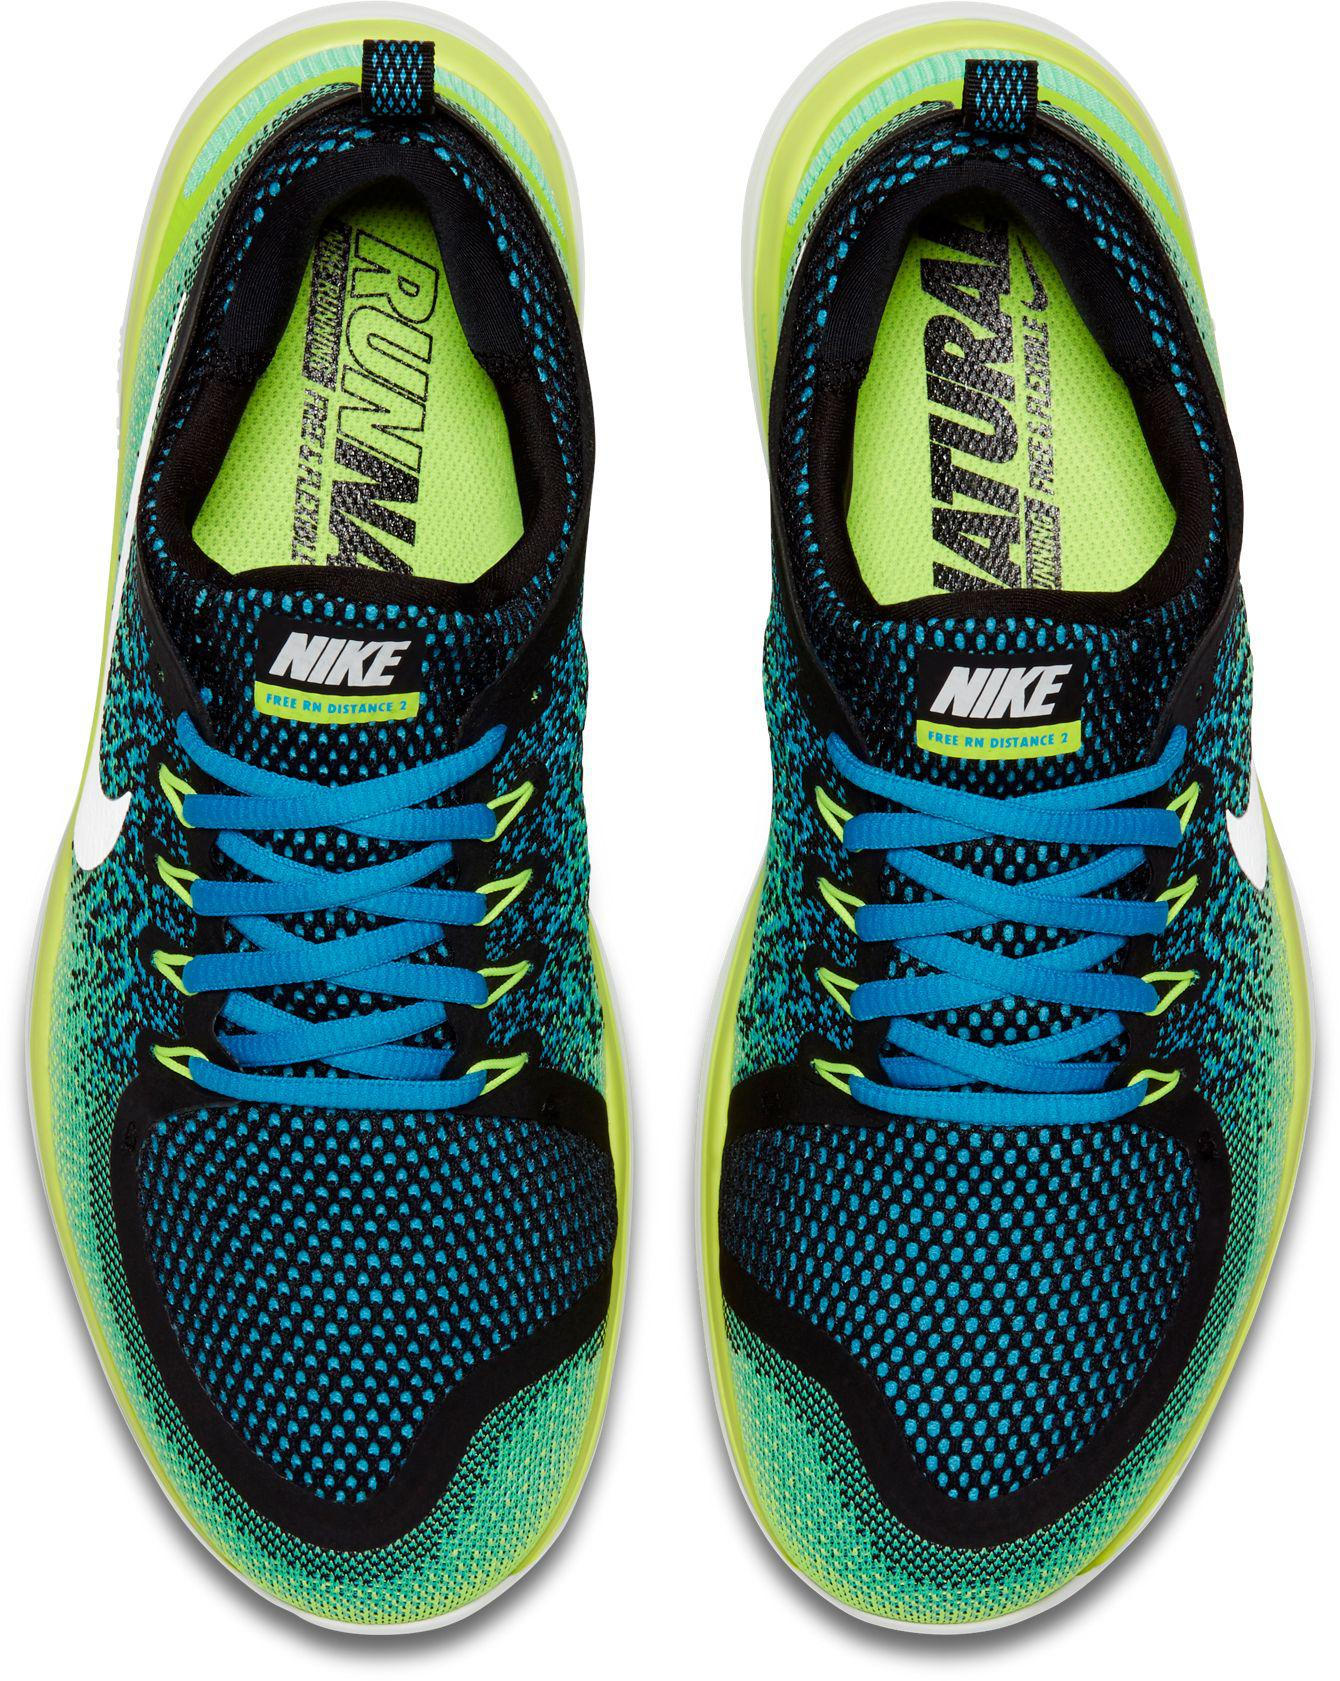 2b39654a04b6 Lyst - Nike Free Rn Distance 2 Running Shoes in Green for Men